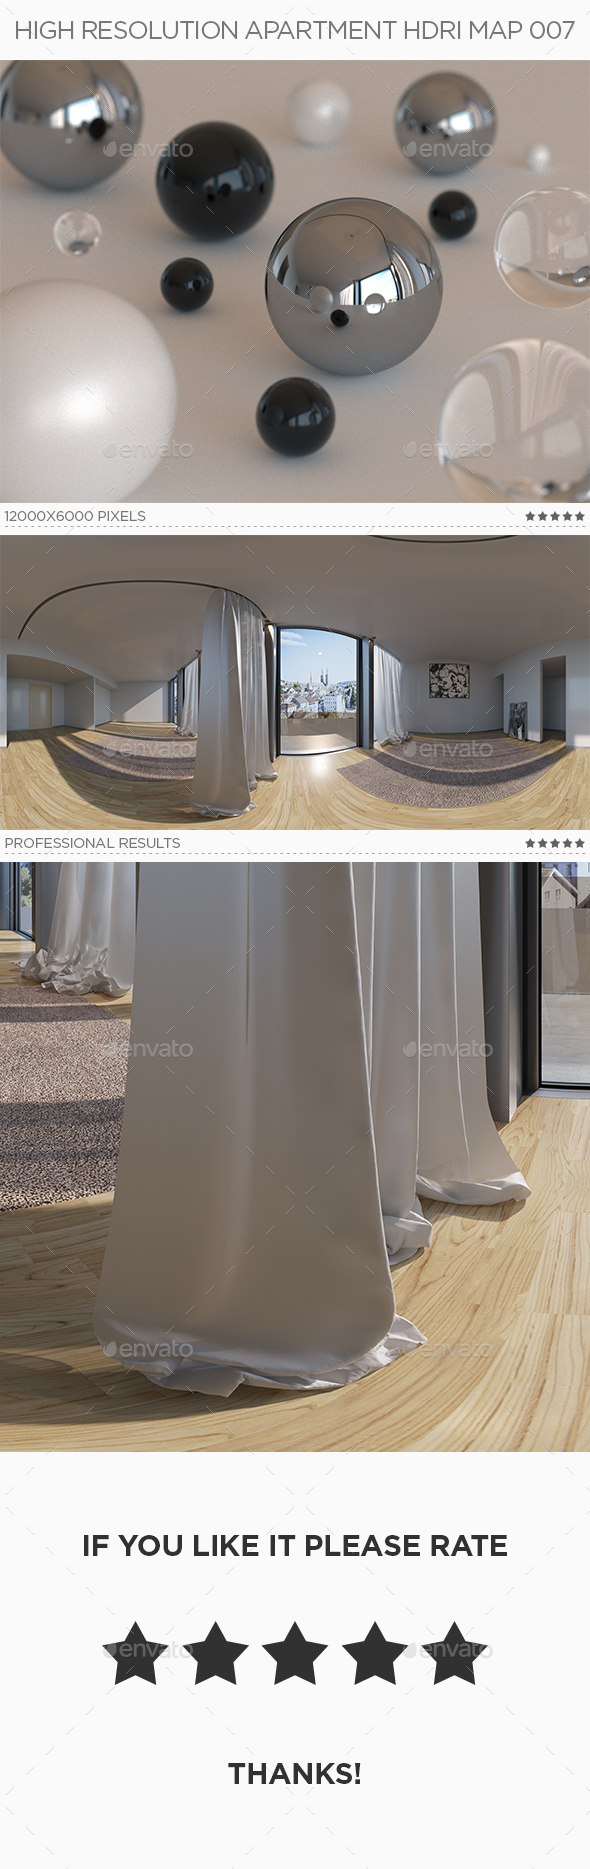 High Resolution Apartment HDRi Map 007 - 3DOcean Item for Sale